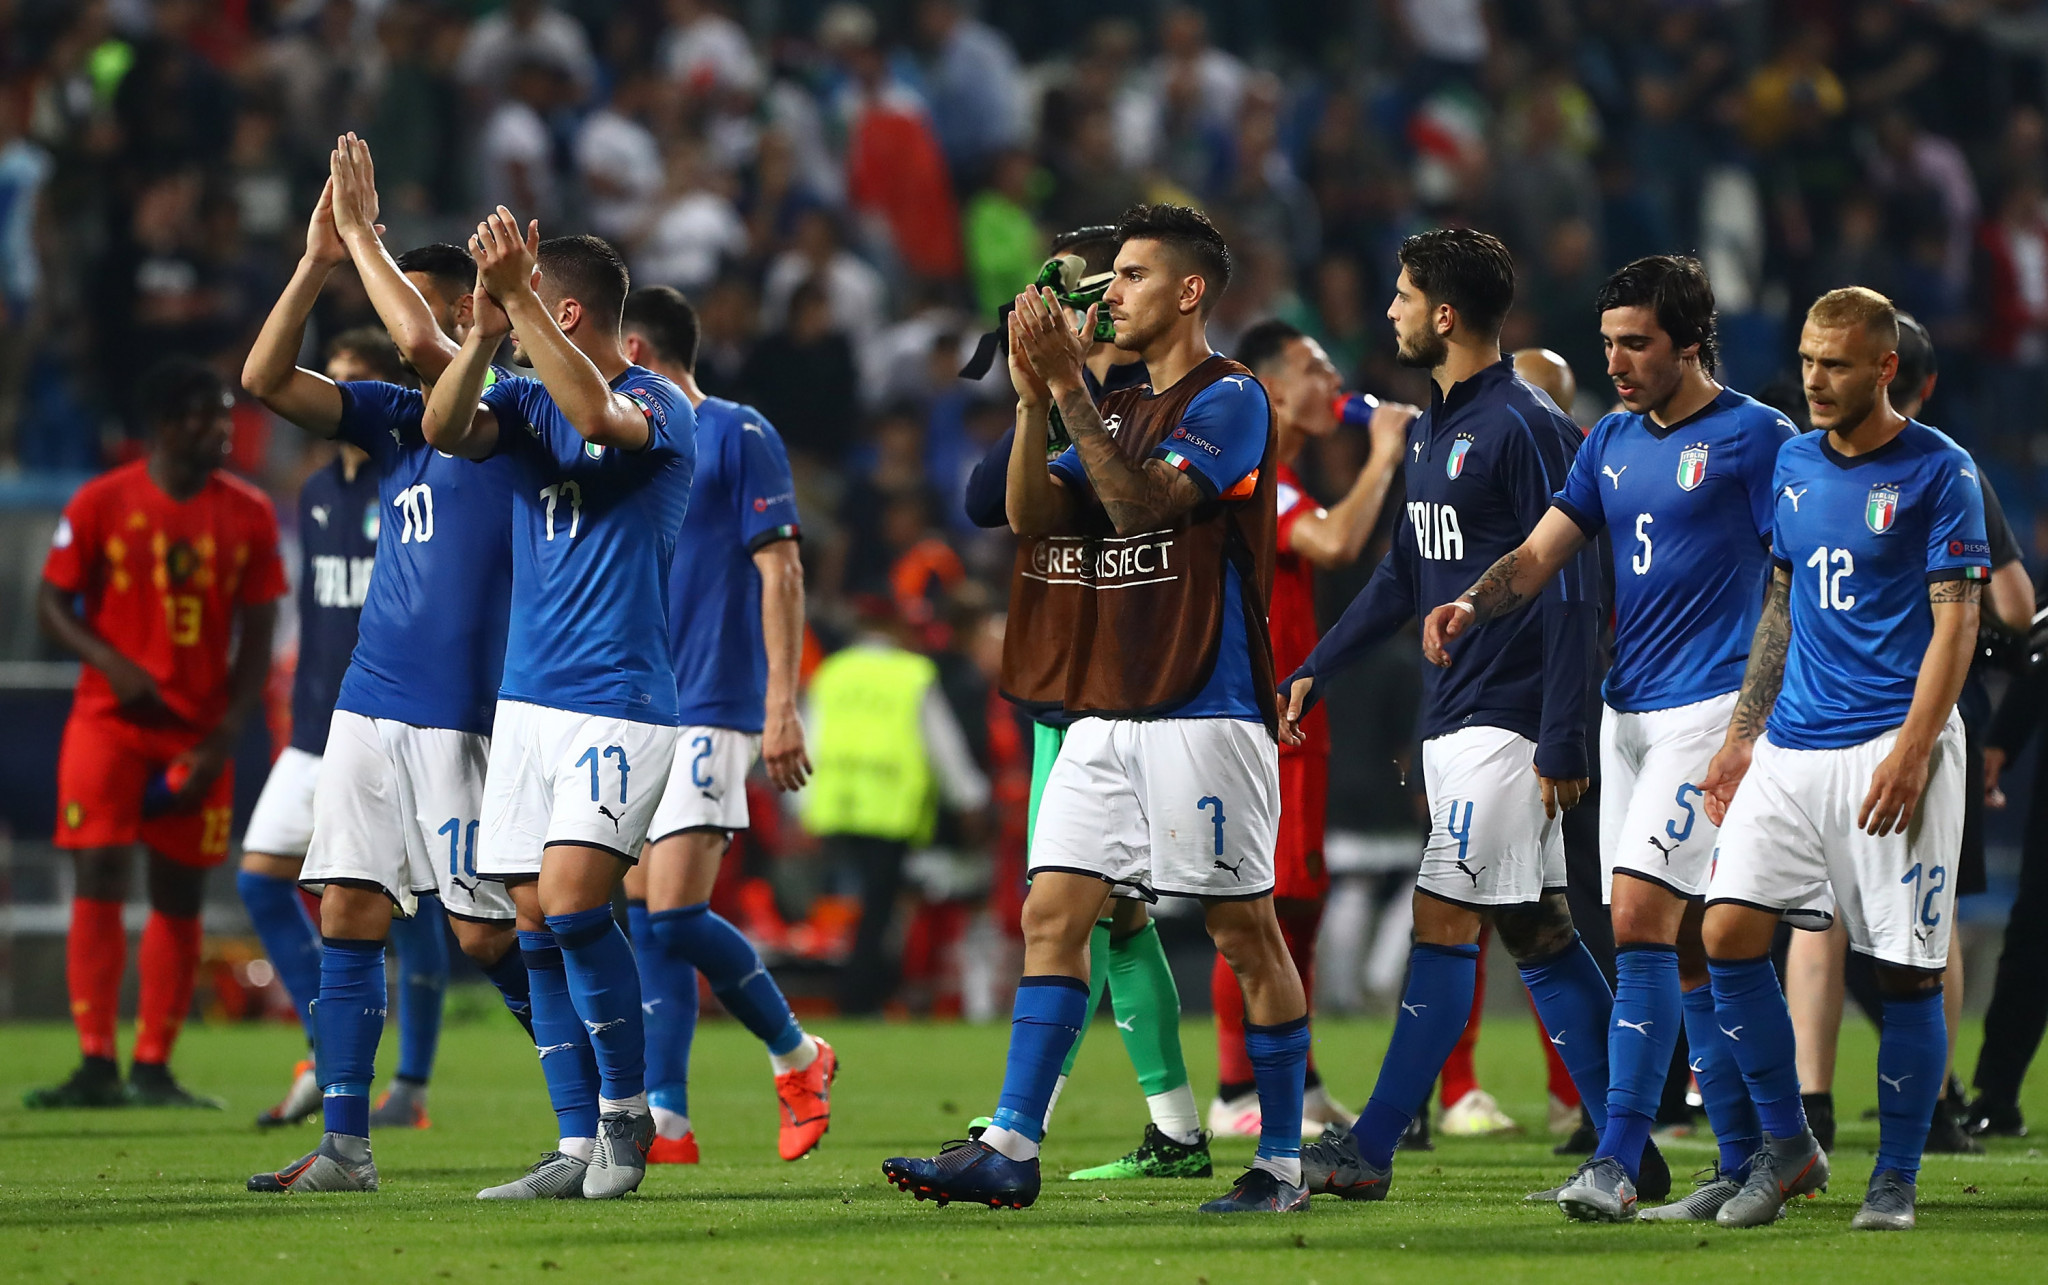 Italy finished as runners-up in the group and could still reach the semi-finals ©Getty Images